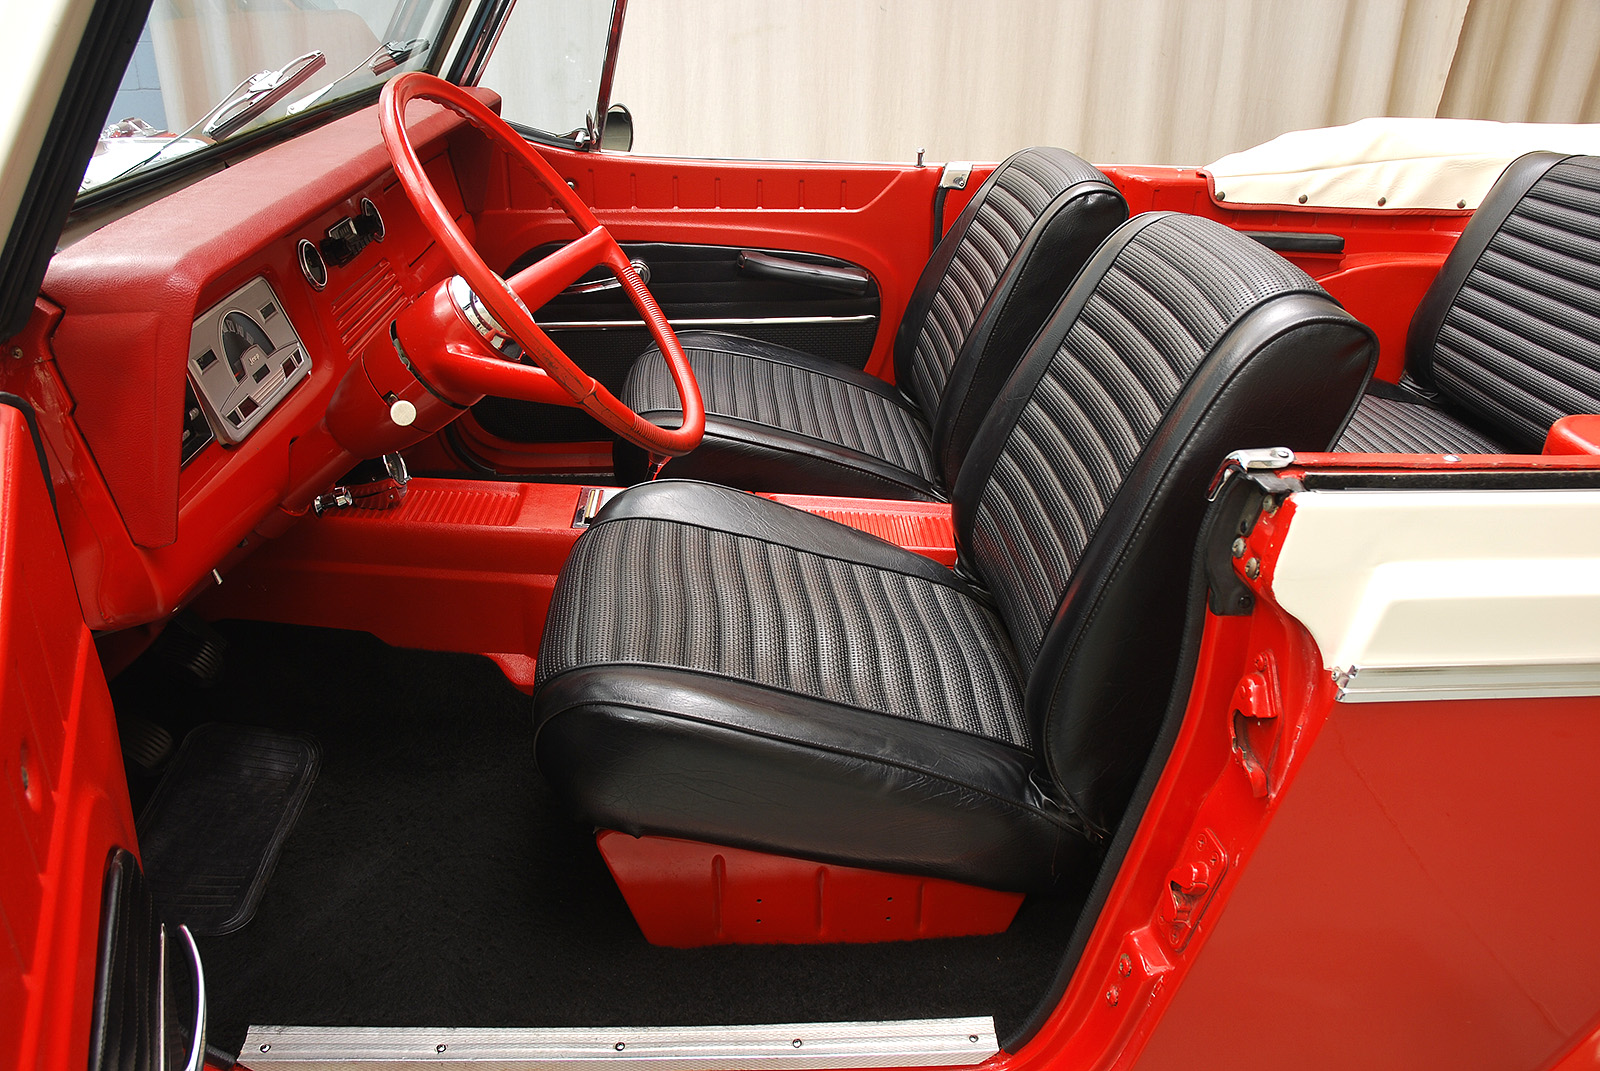 Cost To Paint A Car >> 1968 Jeep Jeepster Convertible | Hyman Ltd.